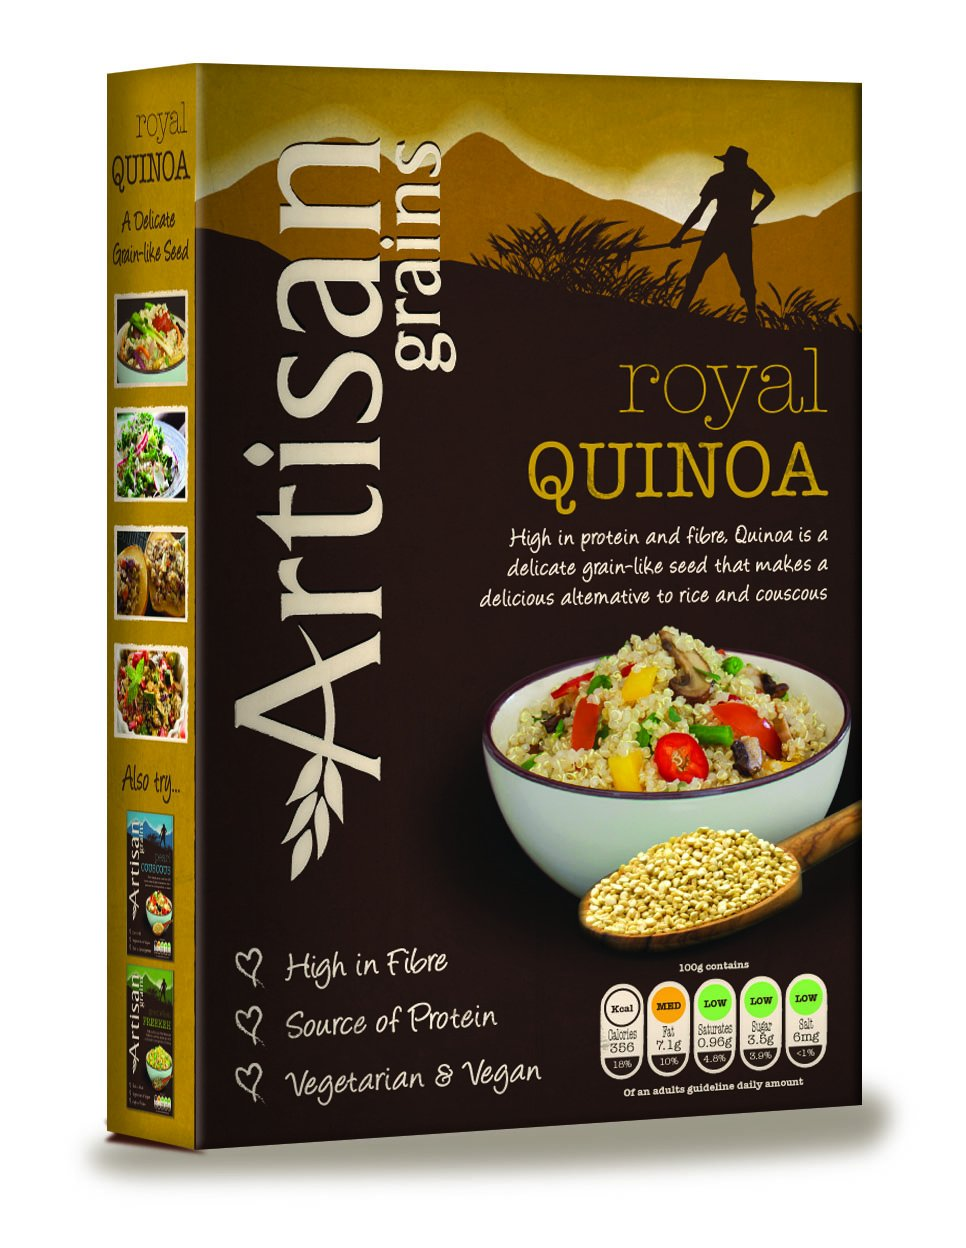 Artisan grains royal quinoa at amazon india deals4india for Artisan indian cuisine